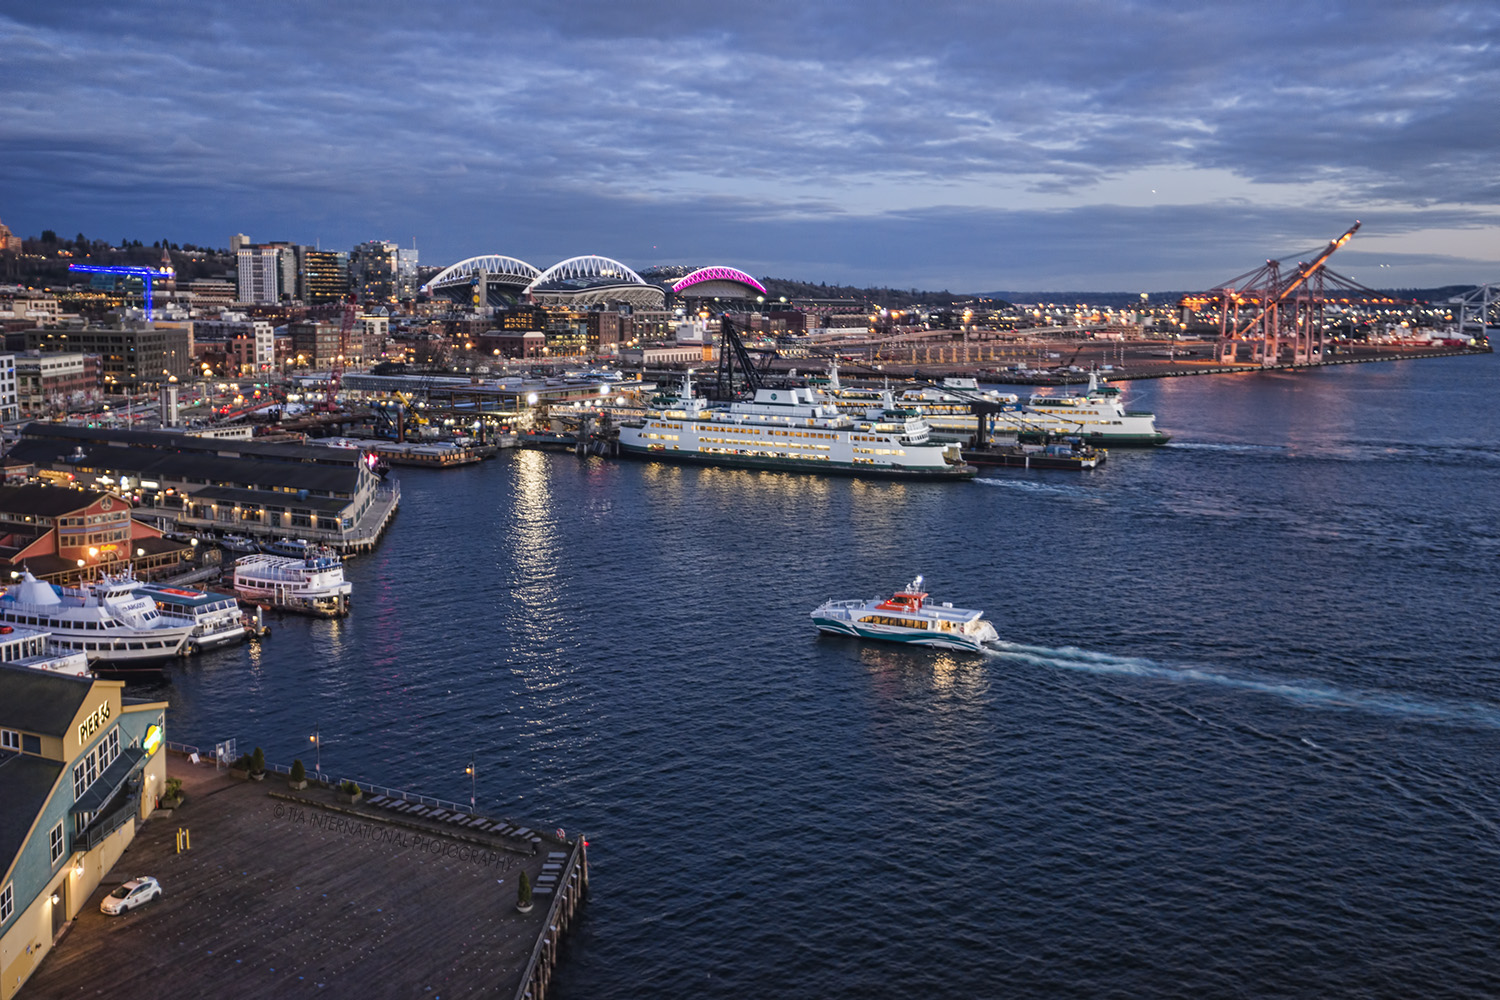 Seattle Waterfront featuring Colman Dock (where the Washington State Ferries arrive and depart) and the city's sports stadiums.